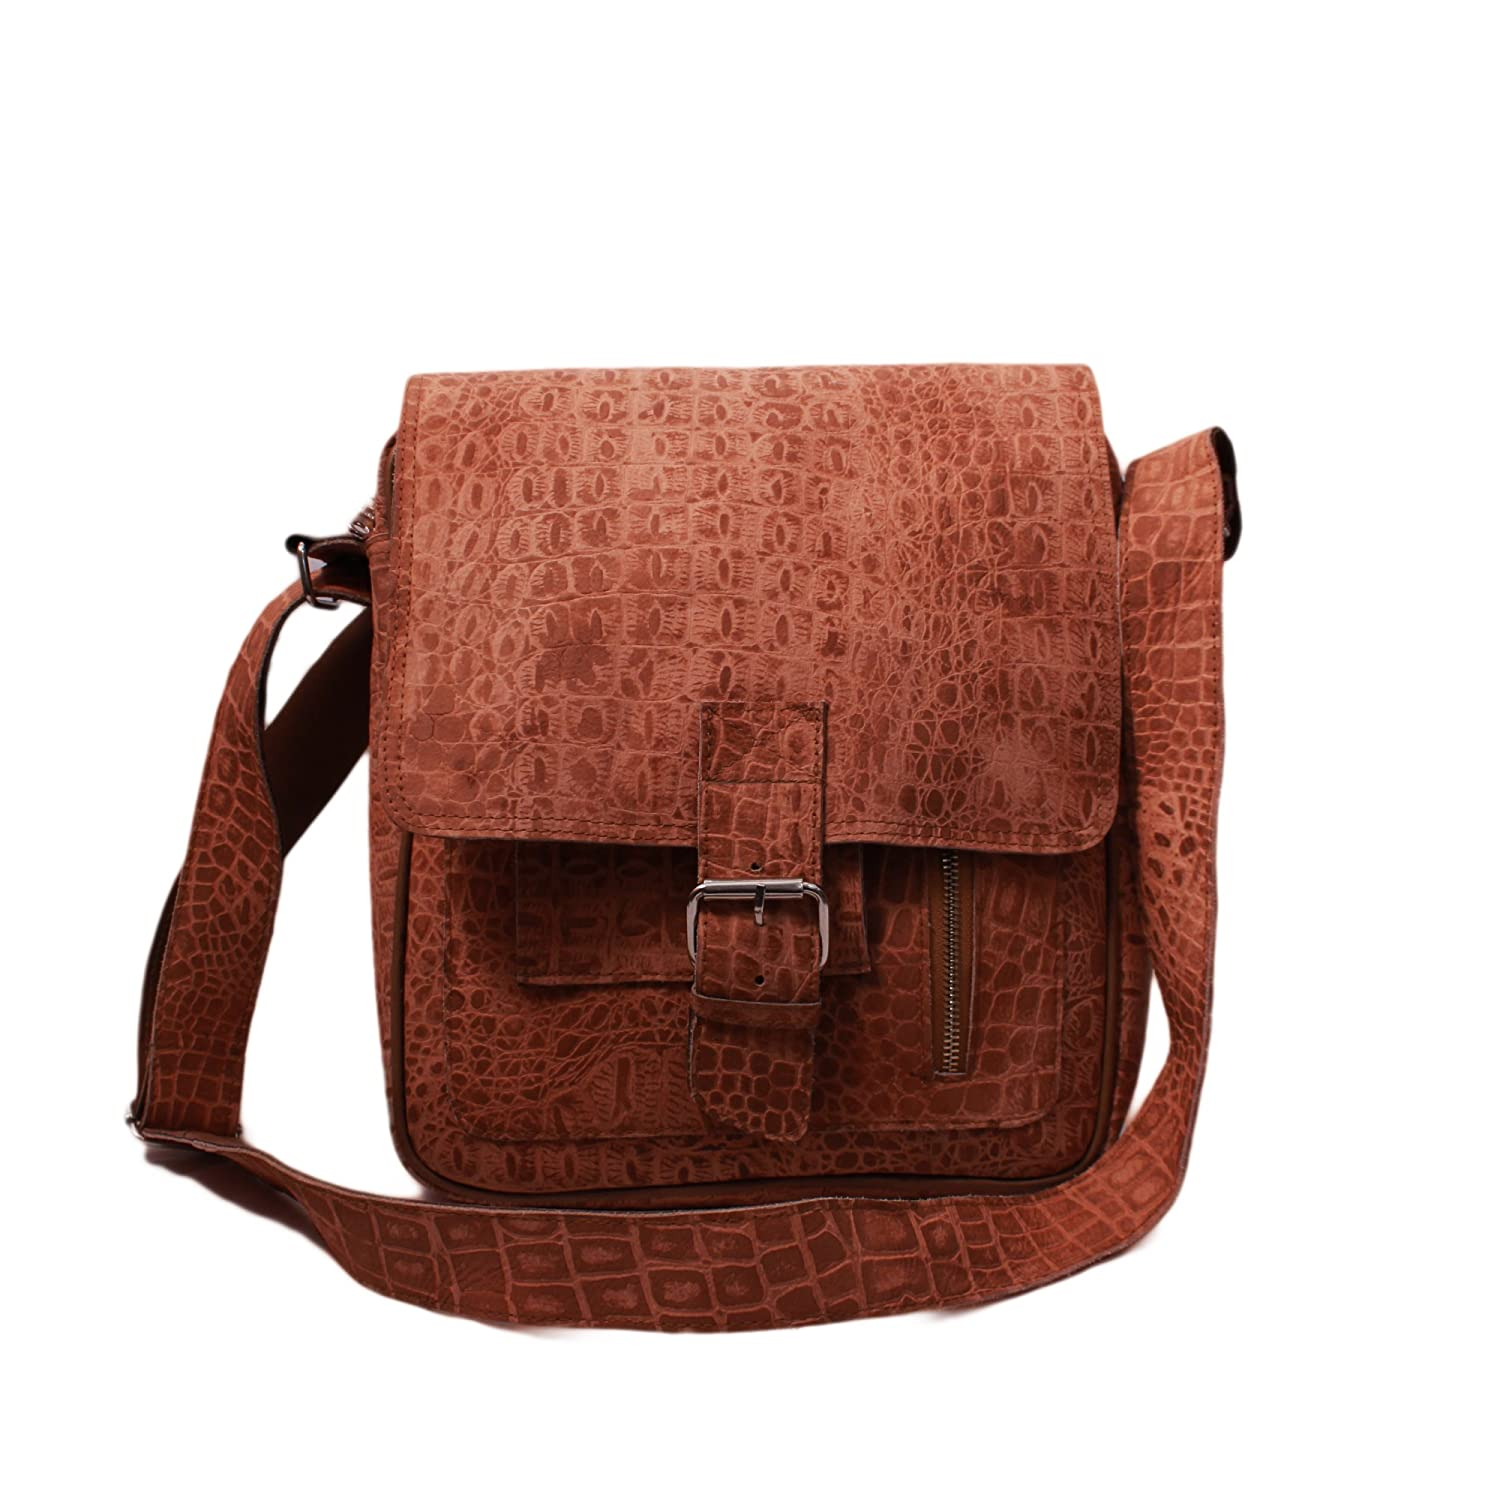 8759185d62 Buy SS Leathers Pure Brown Leather Messanger Bag Online at Low Prices in  India - Amazon.in